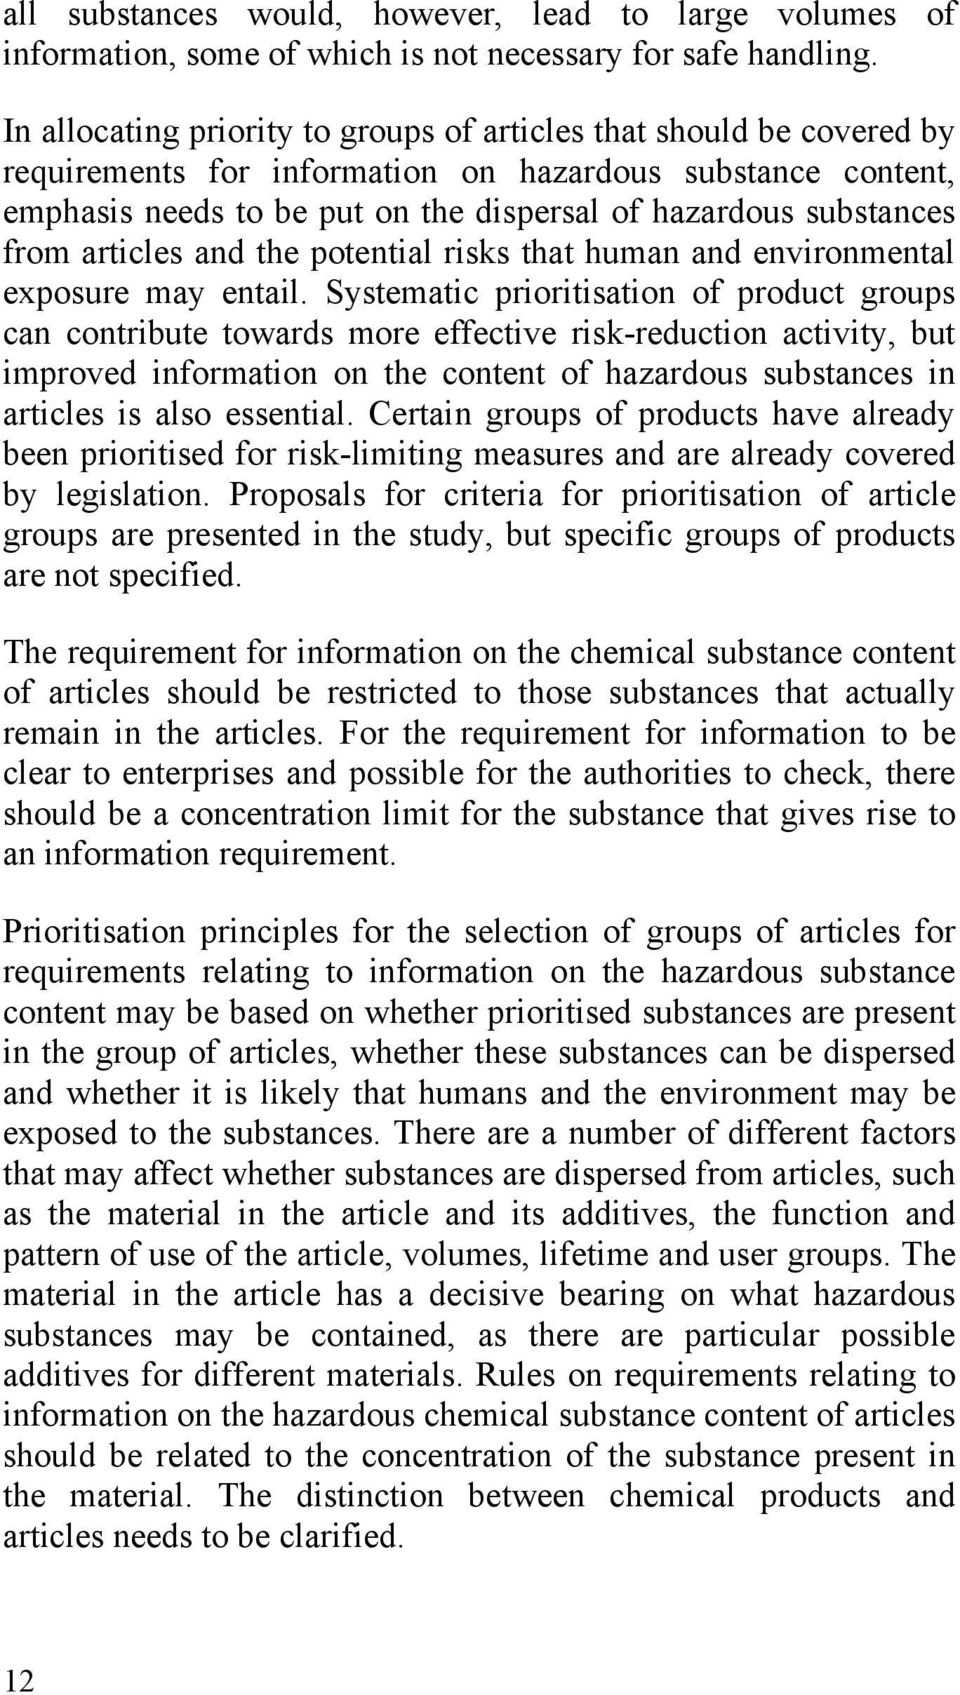 from articles and the potential risks that human and environmental exposure may entail.